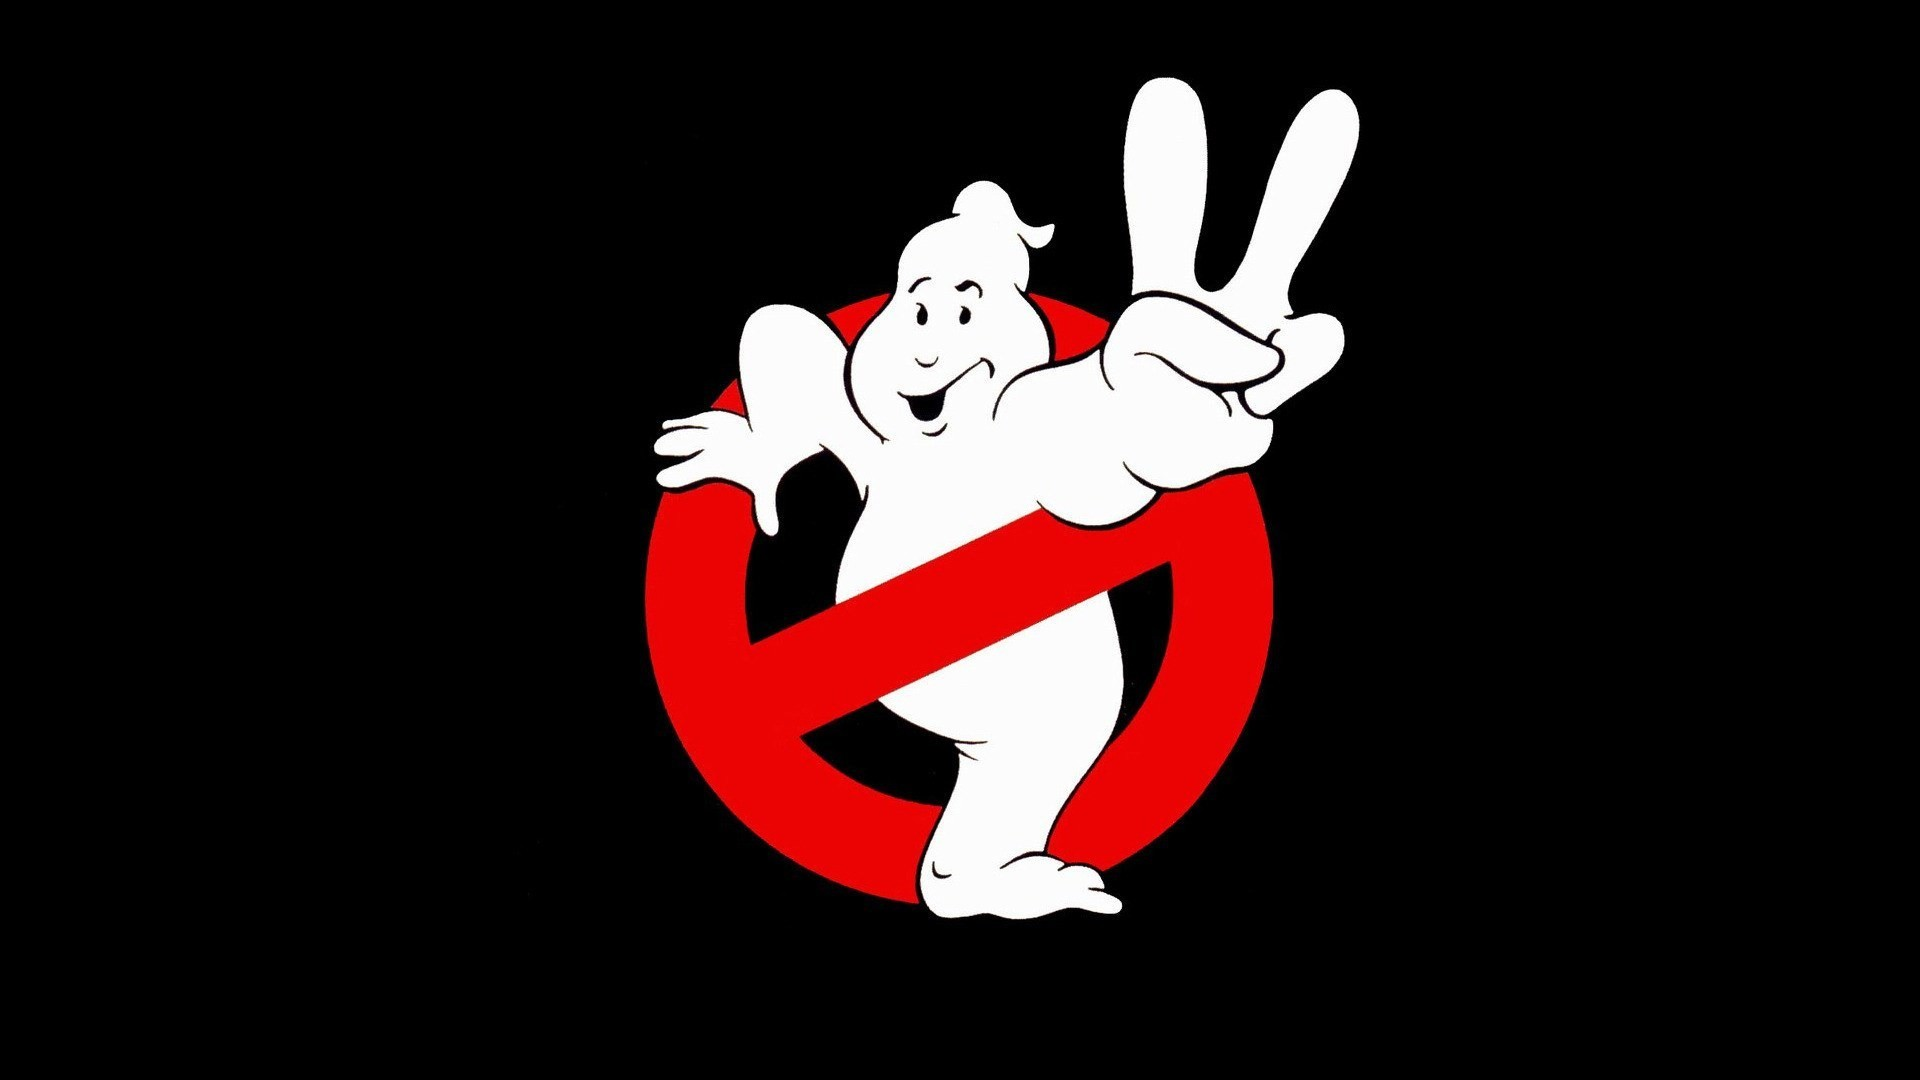 Ghostbusters 2018 wallpapers 82 images - Ghostbusters wallpaper ...